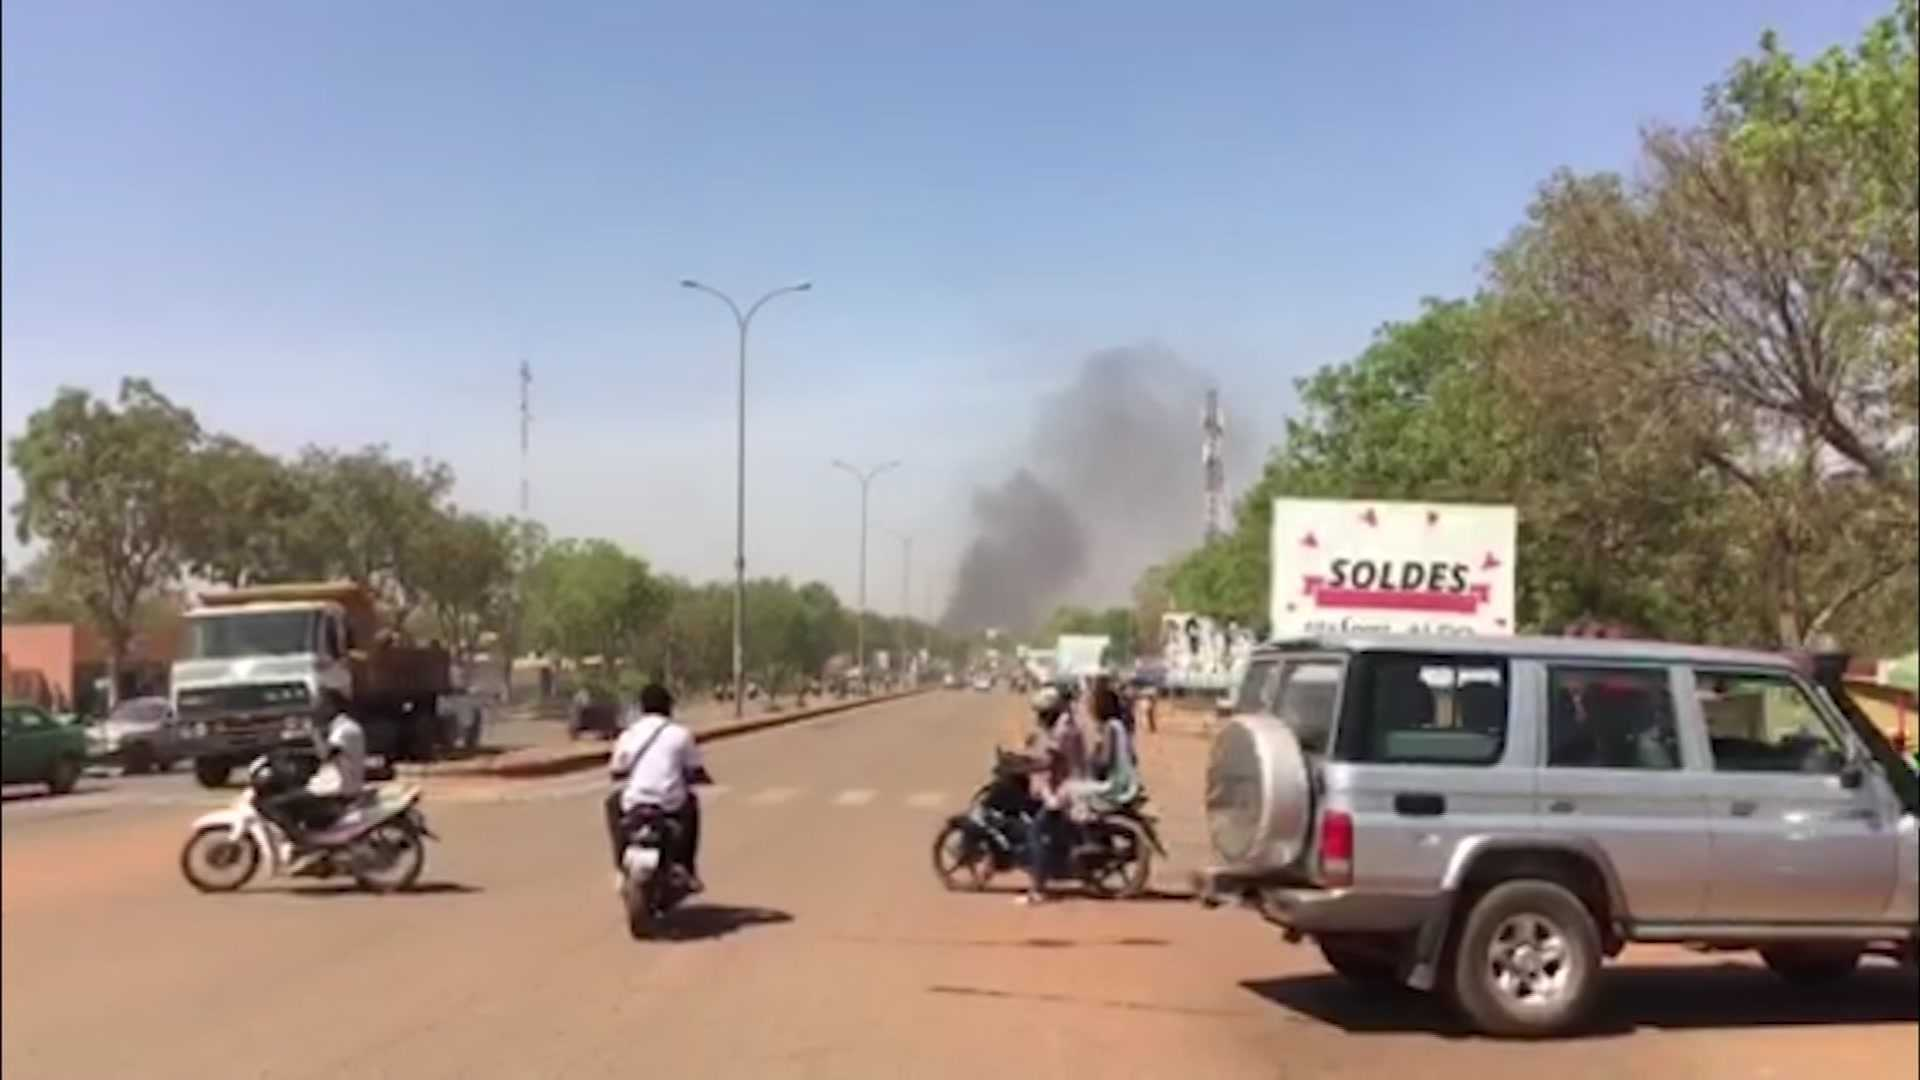 Military headquarters, French Embassy attacked in Burkina Faso's capital